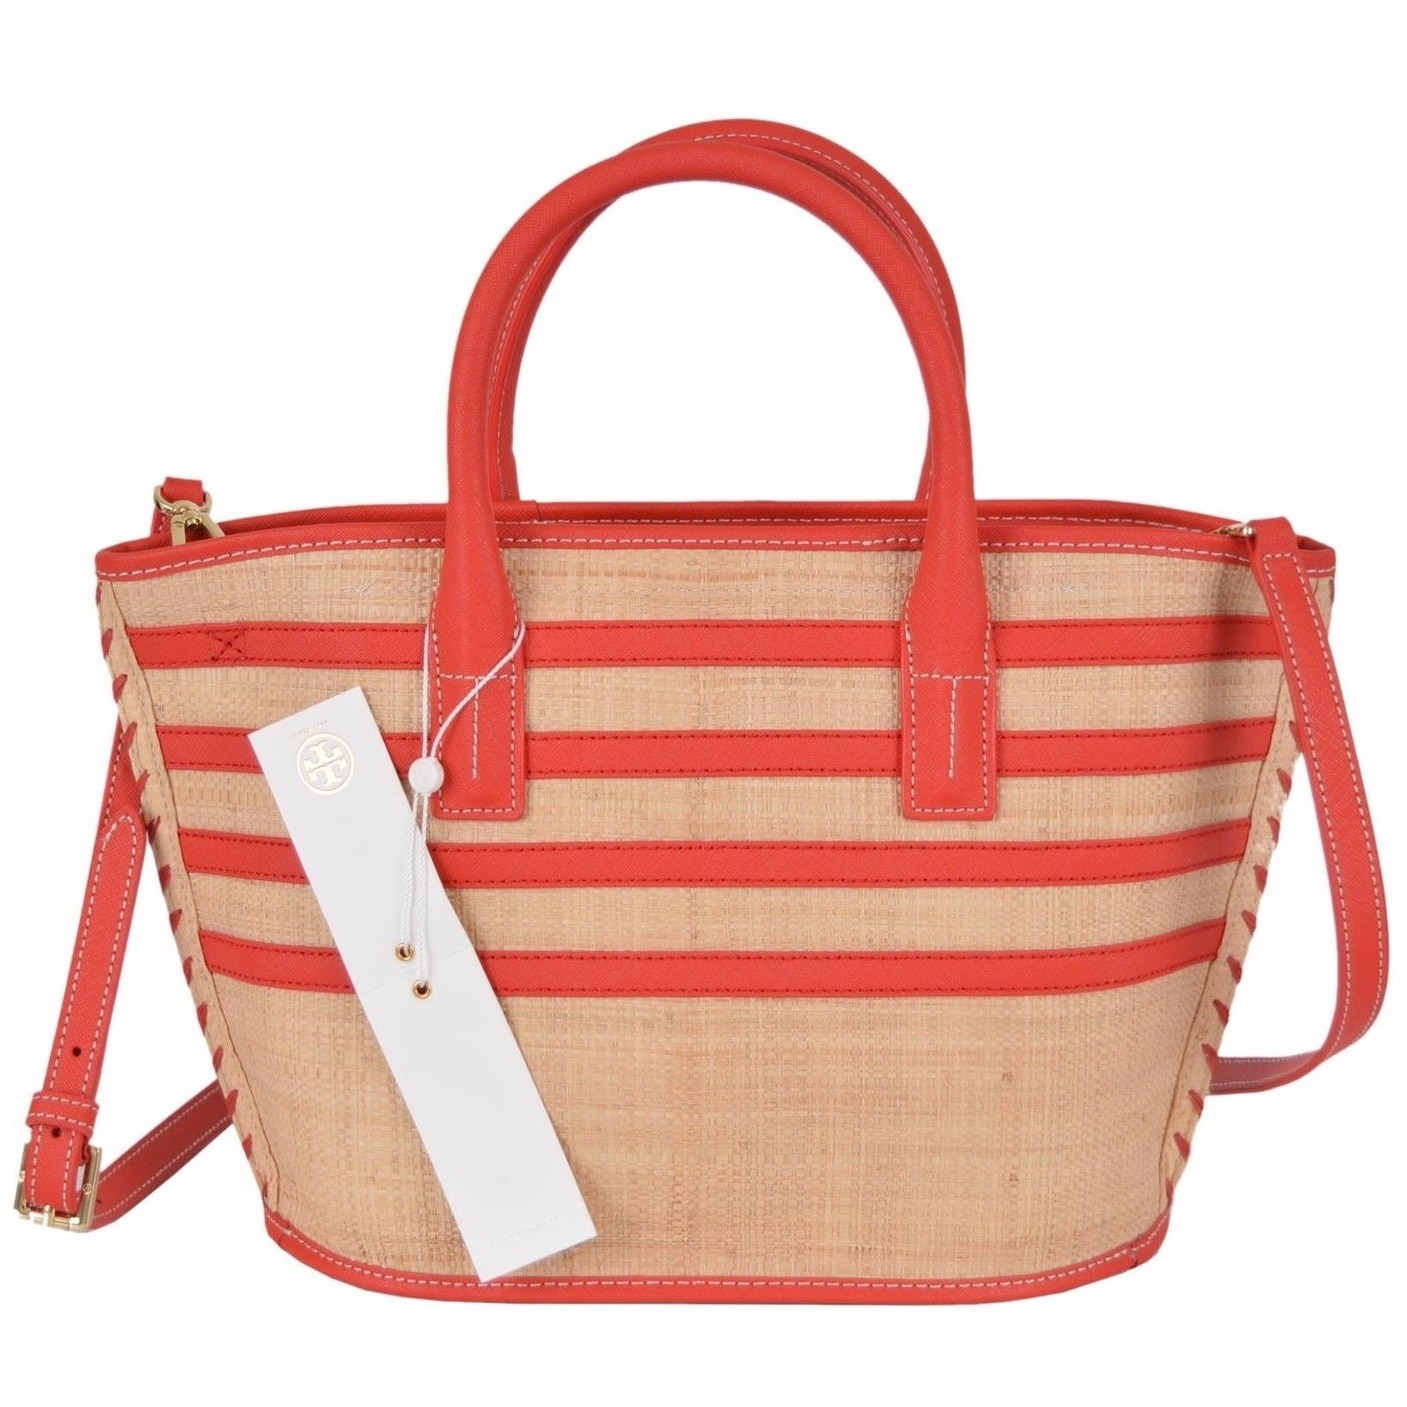 657f3f764 Shop Tory Burch Natural Red Straw Leather Stripe Mini Purse Crossbody Tote  - Free Shipping Today - Overstock - 21525840